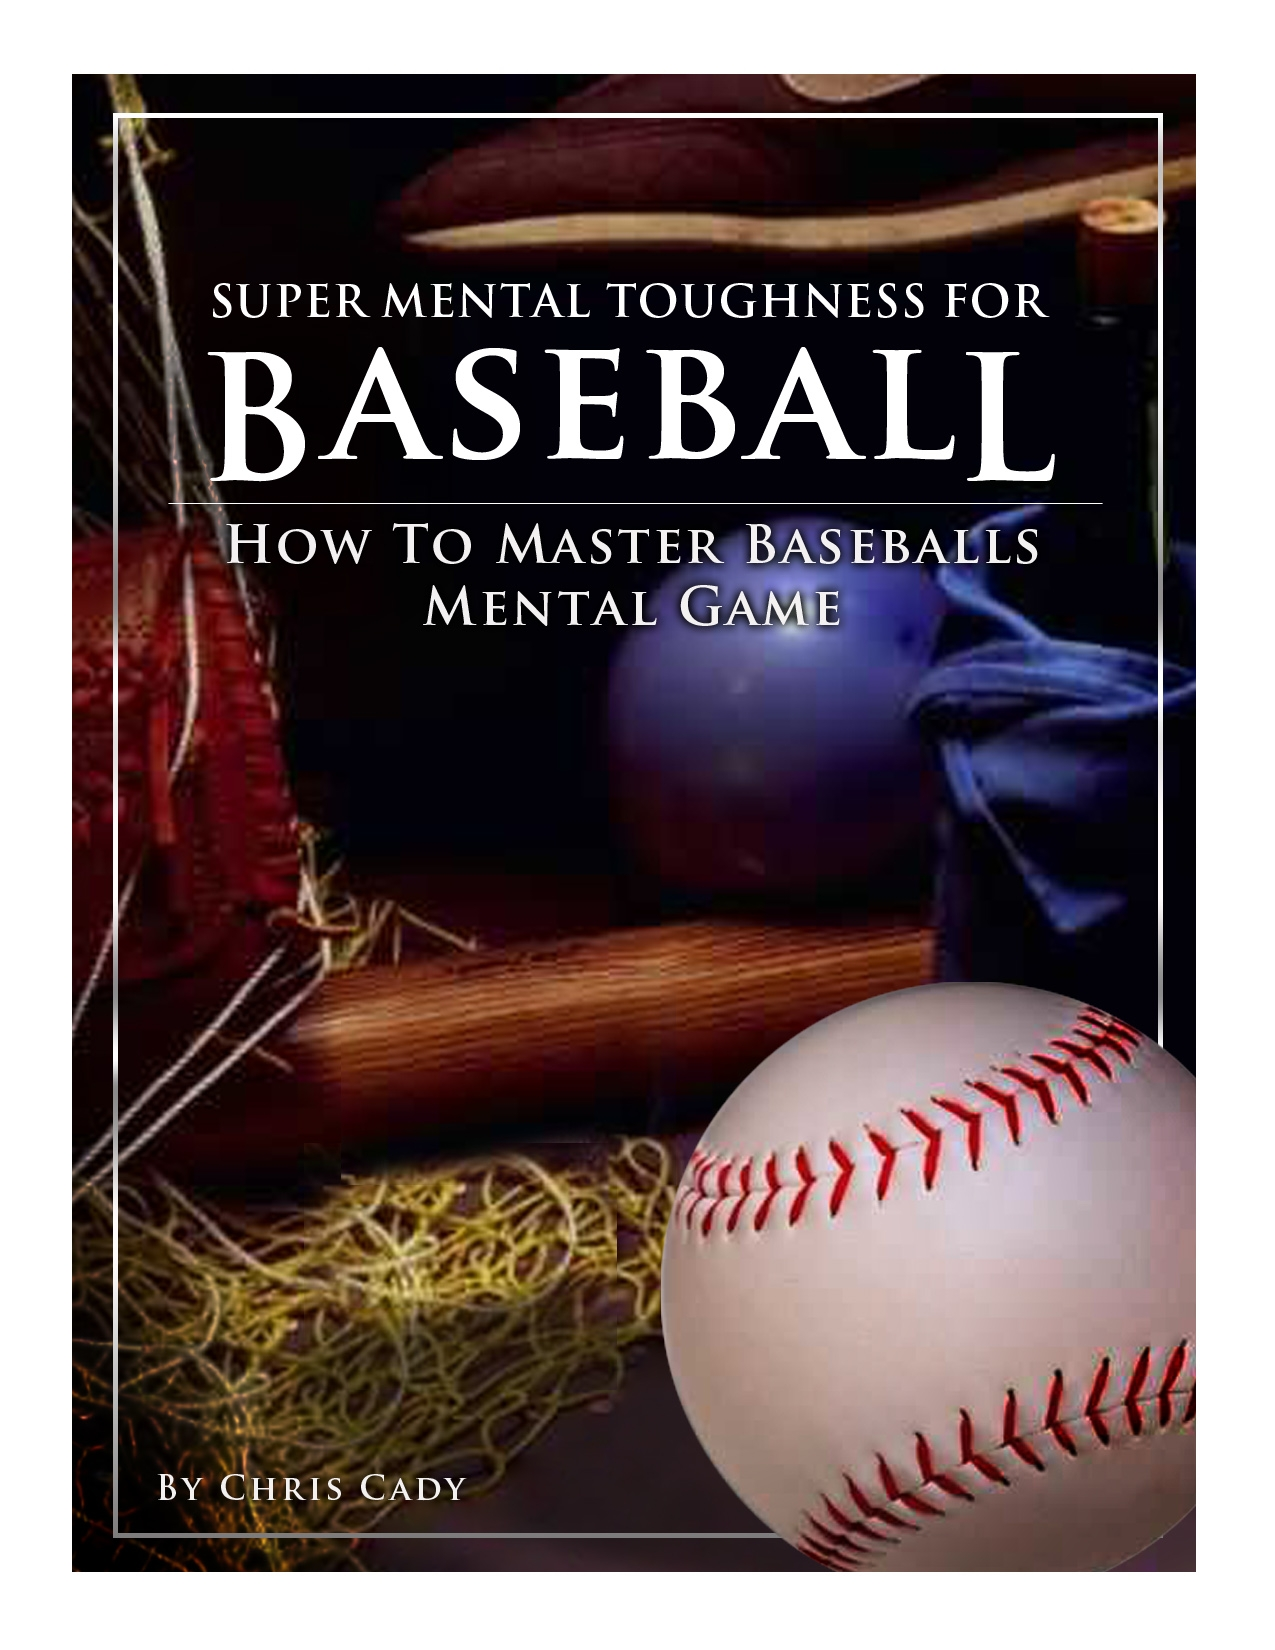 baseball training mental game mental toughness hypnosis cd cover by sports hypnotist chris cady